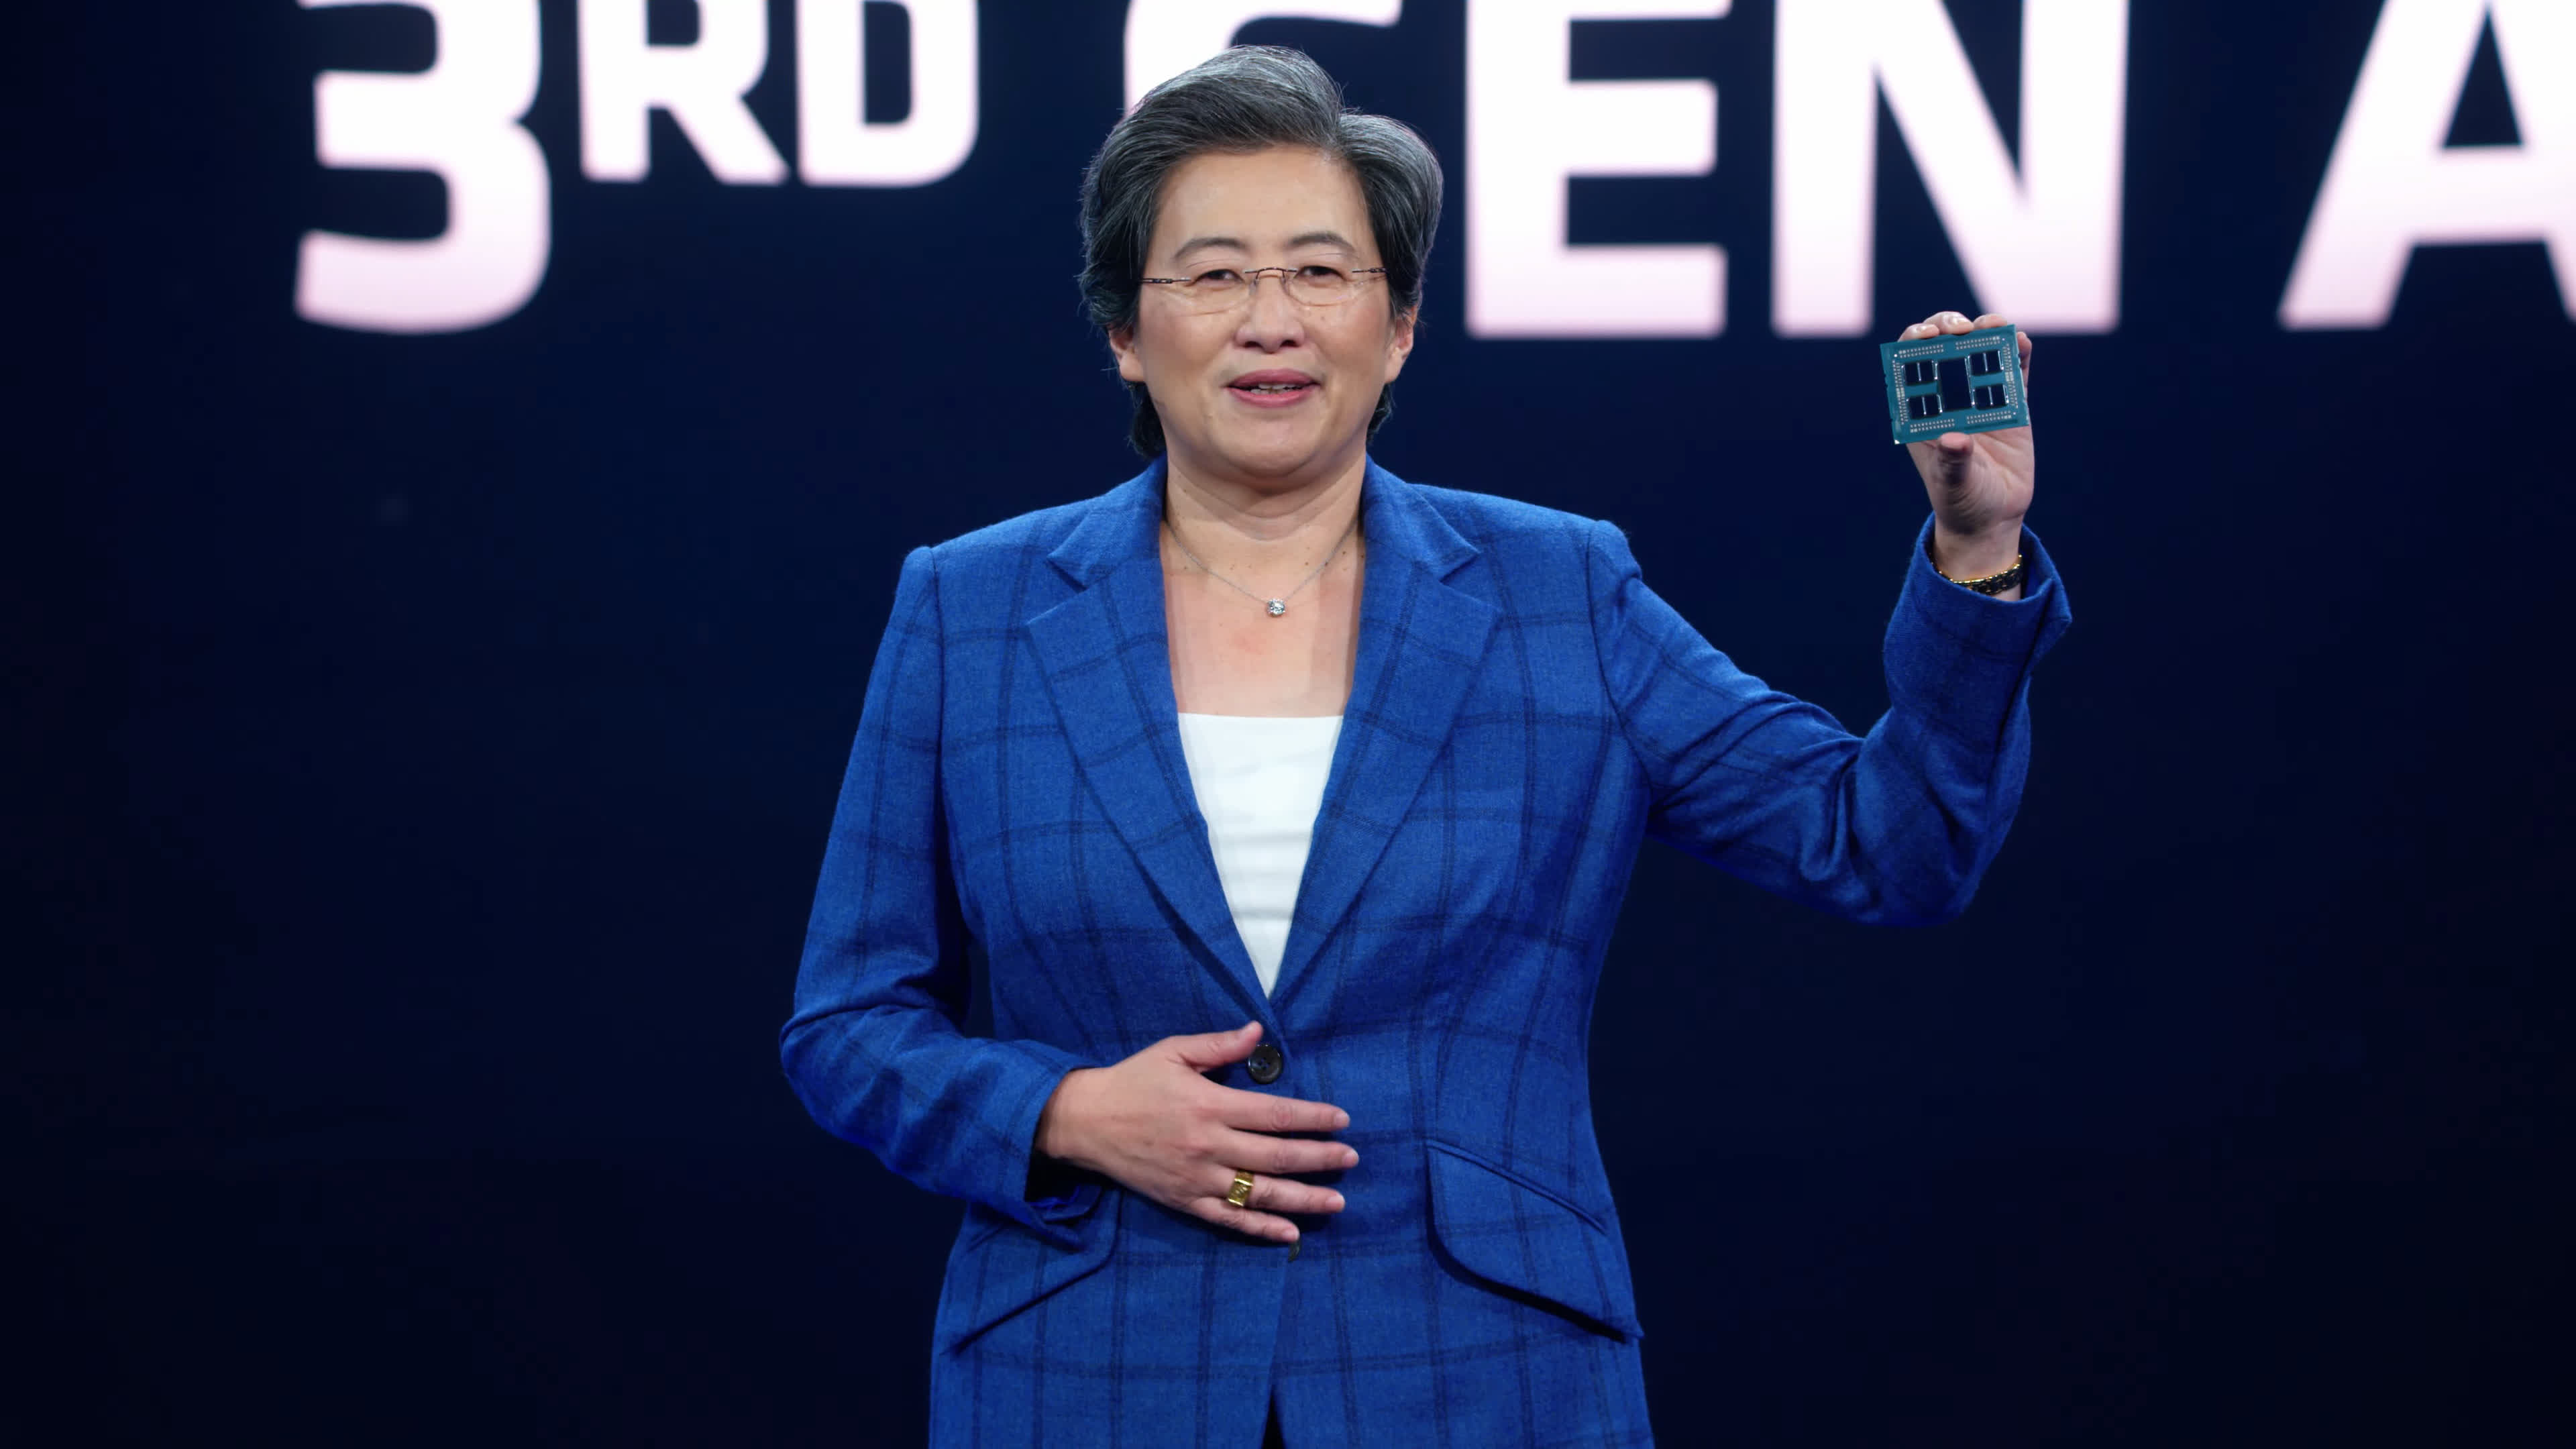 AMD wants to make its chips 30 times more energy-efficient by 2025